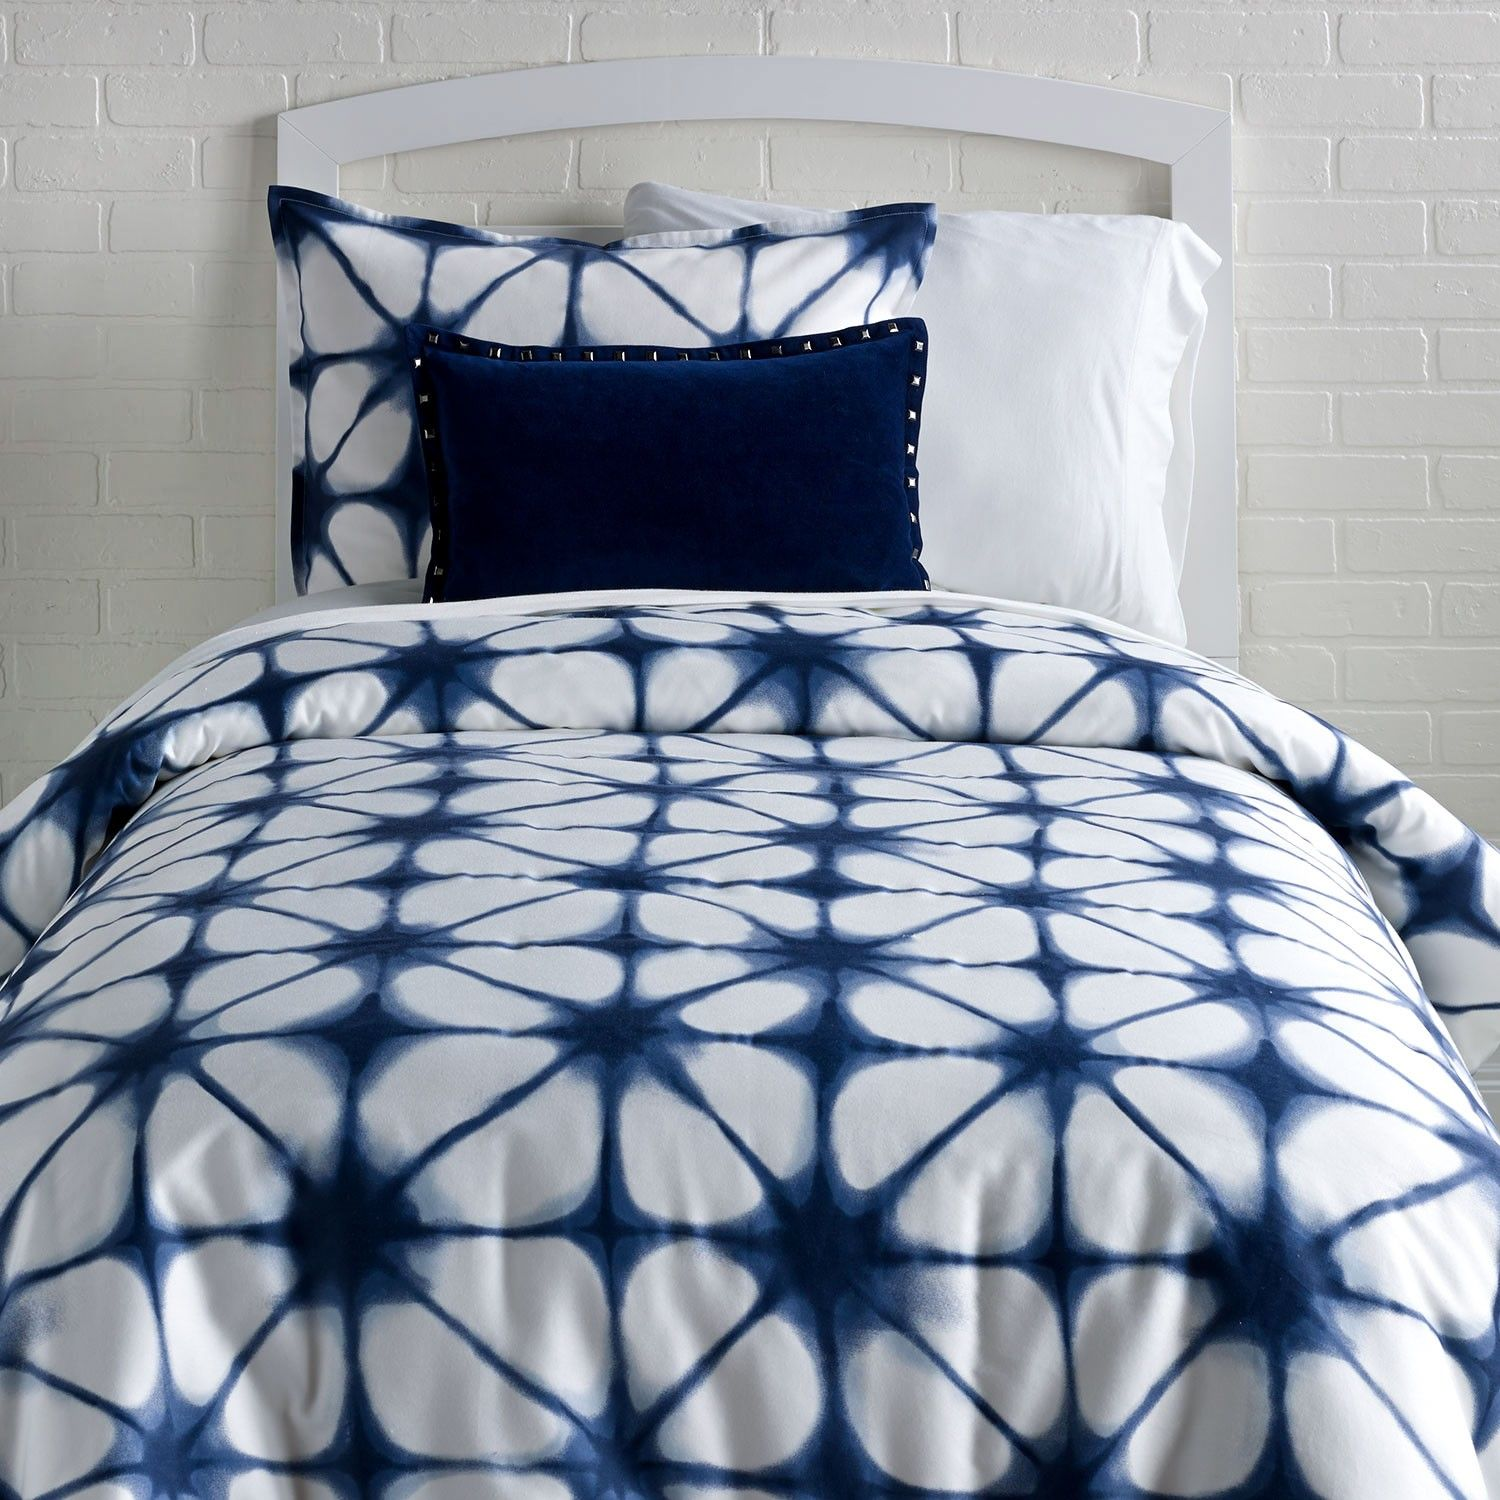 Bed sheets designs white - Tie Dye Bedding Sheets Collections